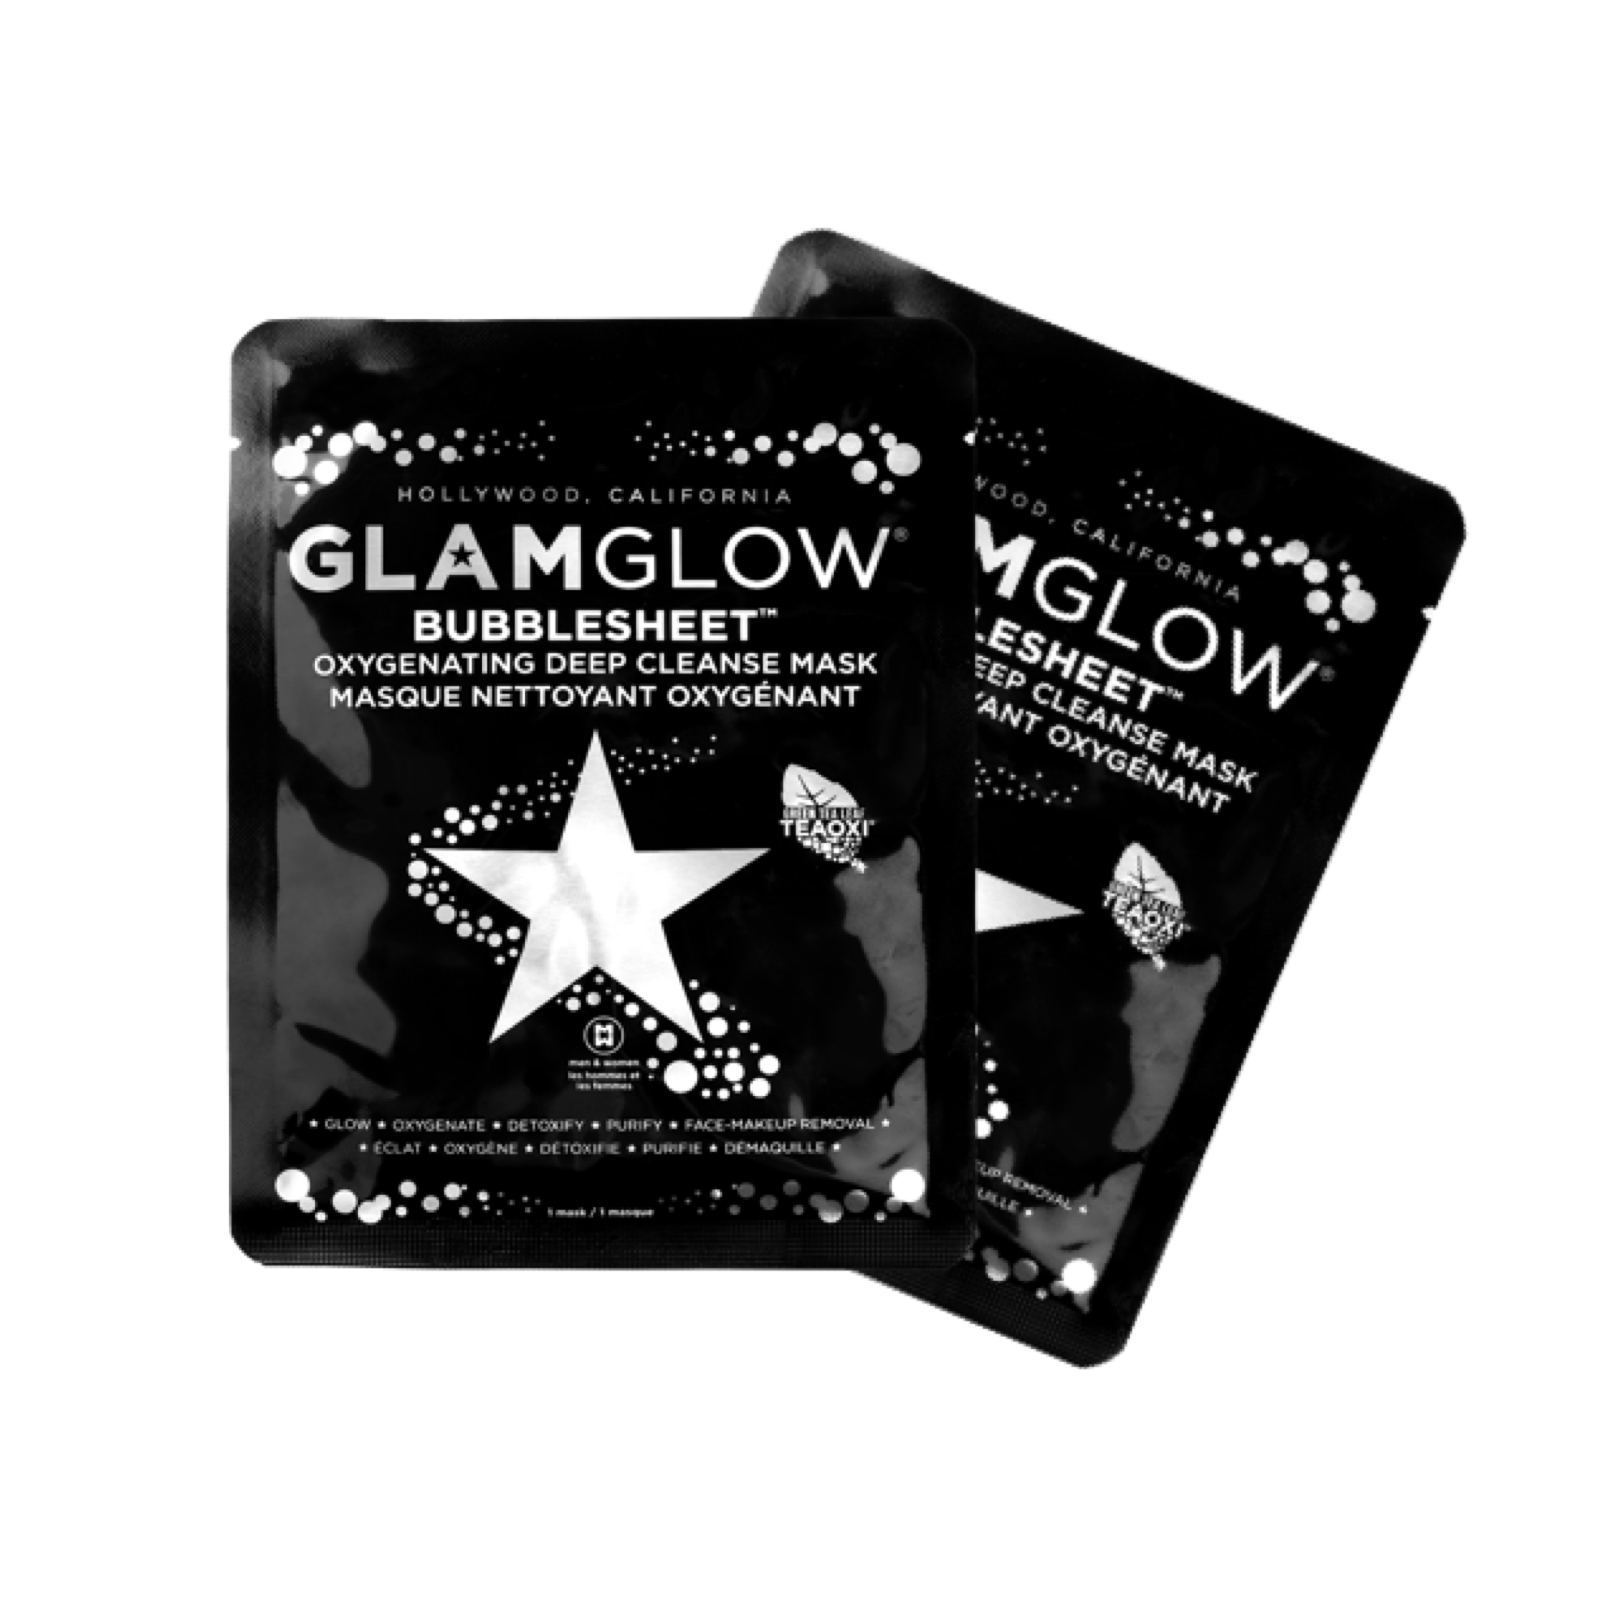 GLAMGLOW BUBBLESHEET MASKS